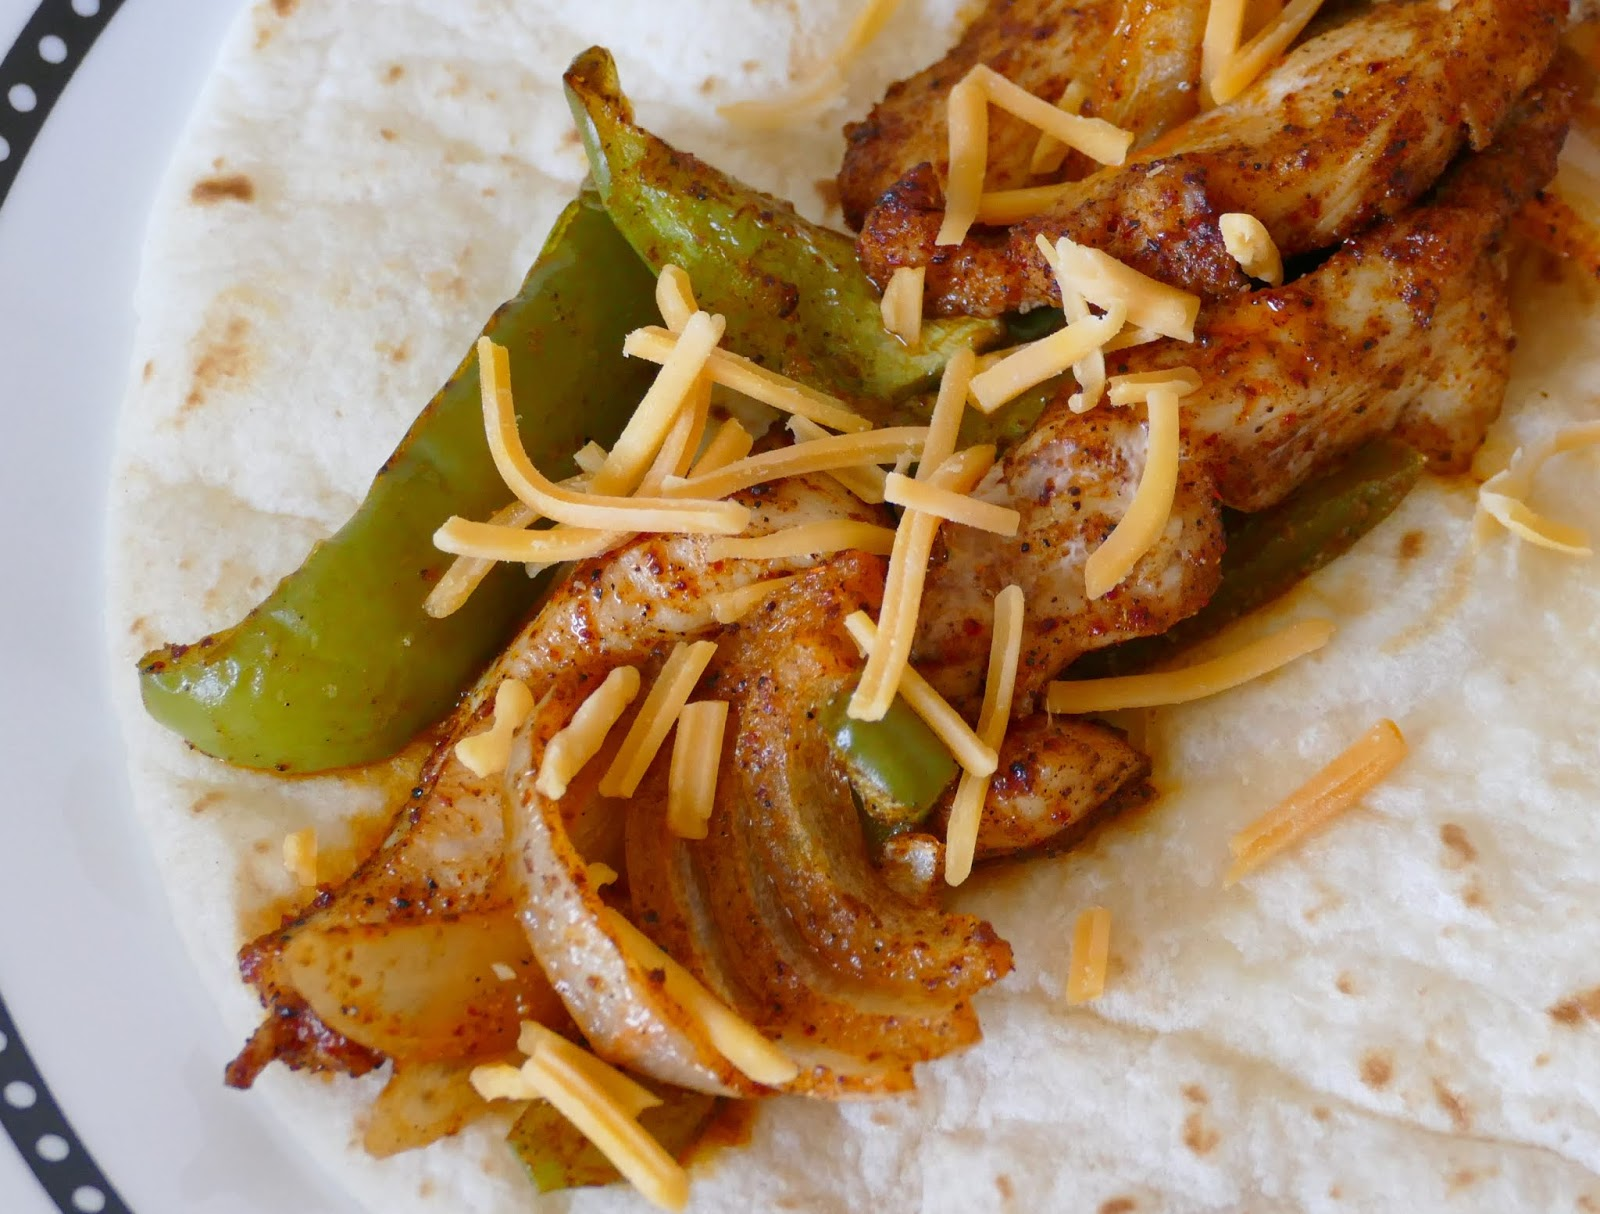 Dinner is on the table in 30 minutes with this easy Mexican recipe! All the flavors of a traditional fajita, baked in the oven, served on a flour tortilla with your favorite toppings! Great with chicken, steak or shrimp!